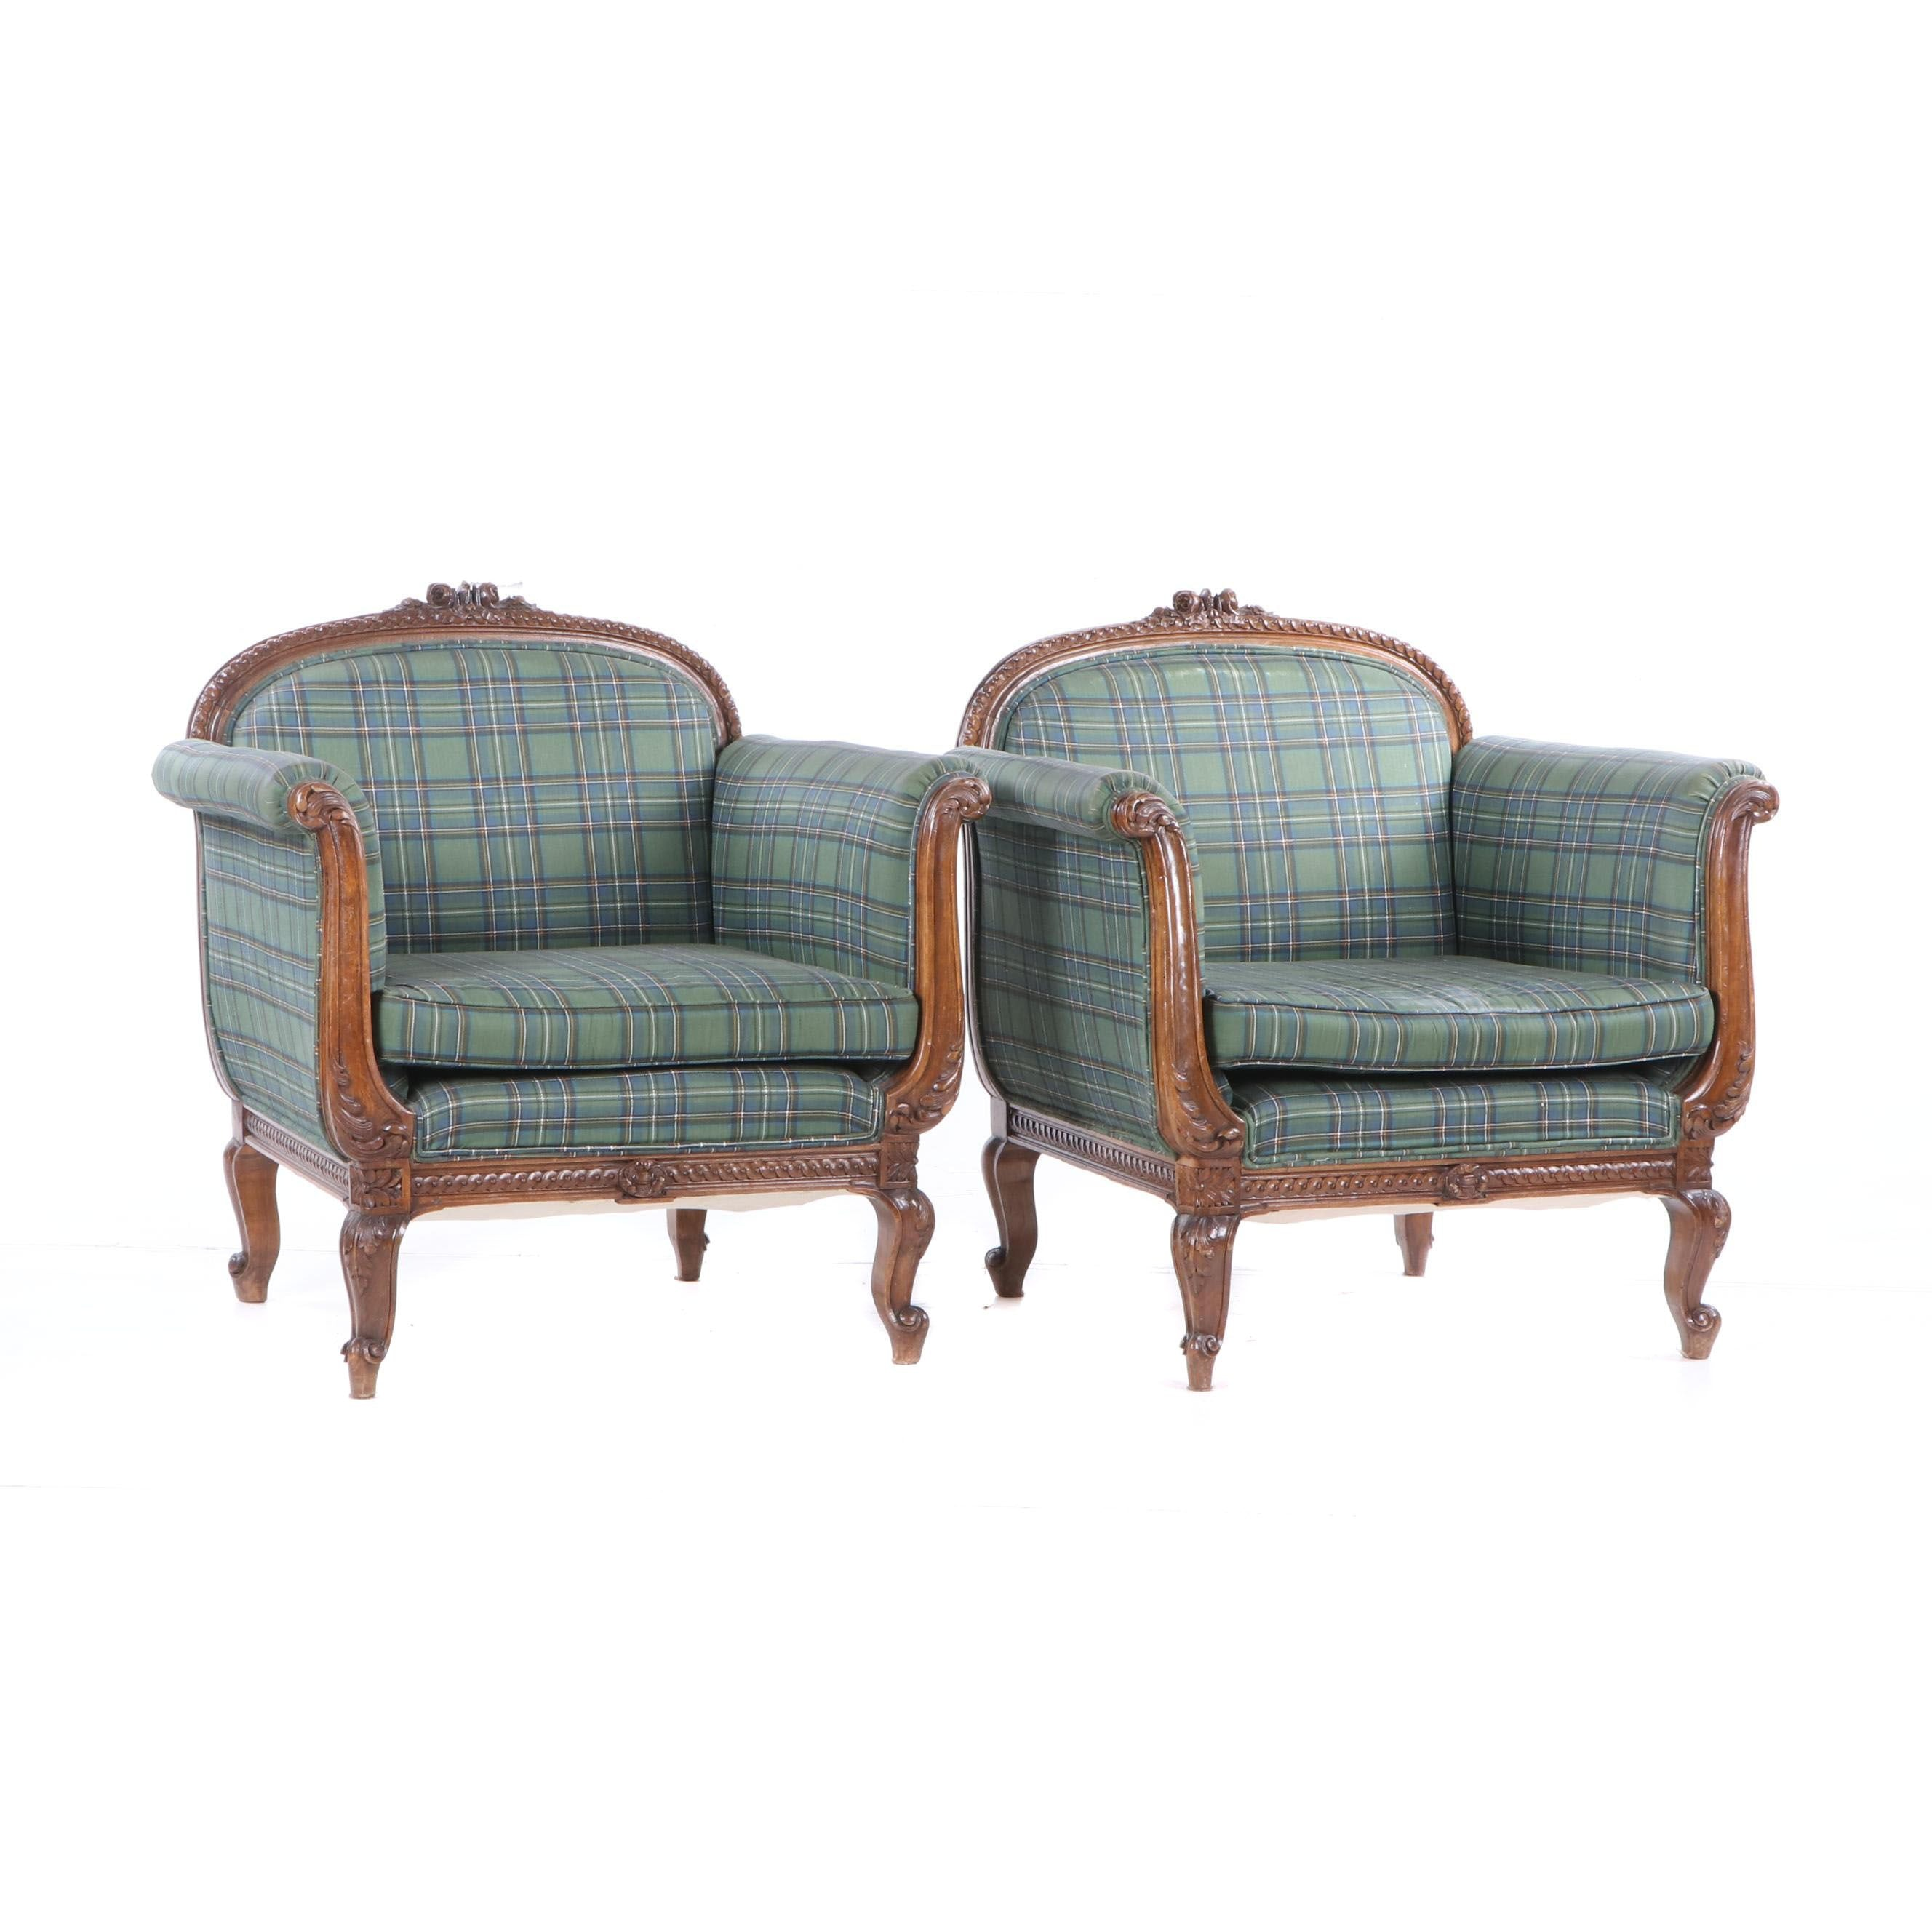 Louis XV Style Hand Carved Wood Frame Reupholstered Armchairs, Early 20th C.